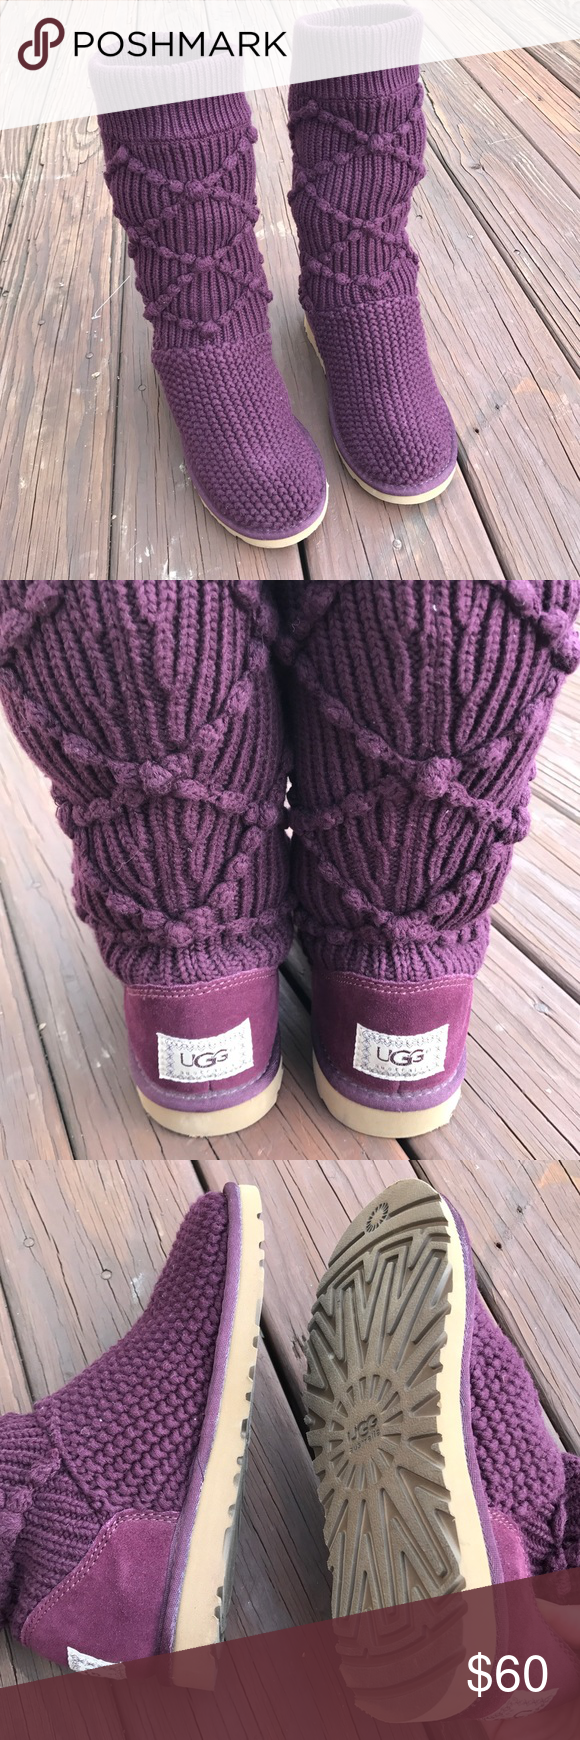 Cable knit UGG boots Dark purple cable knit UGG boots go to about mid calf - never worn outside selling because they are too small for me don't have the box ...